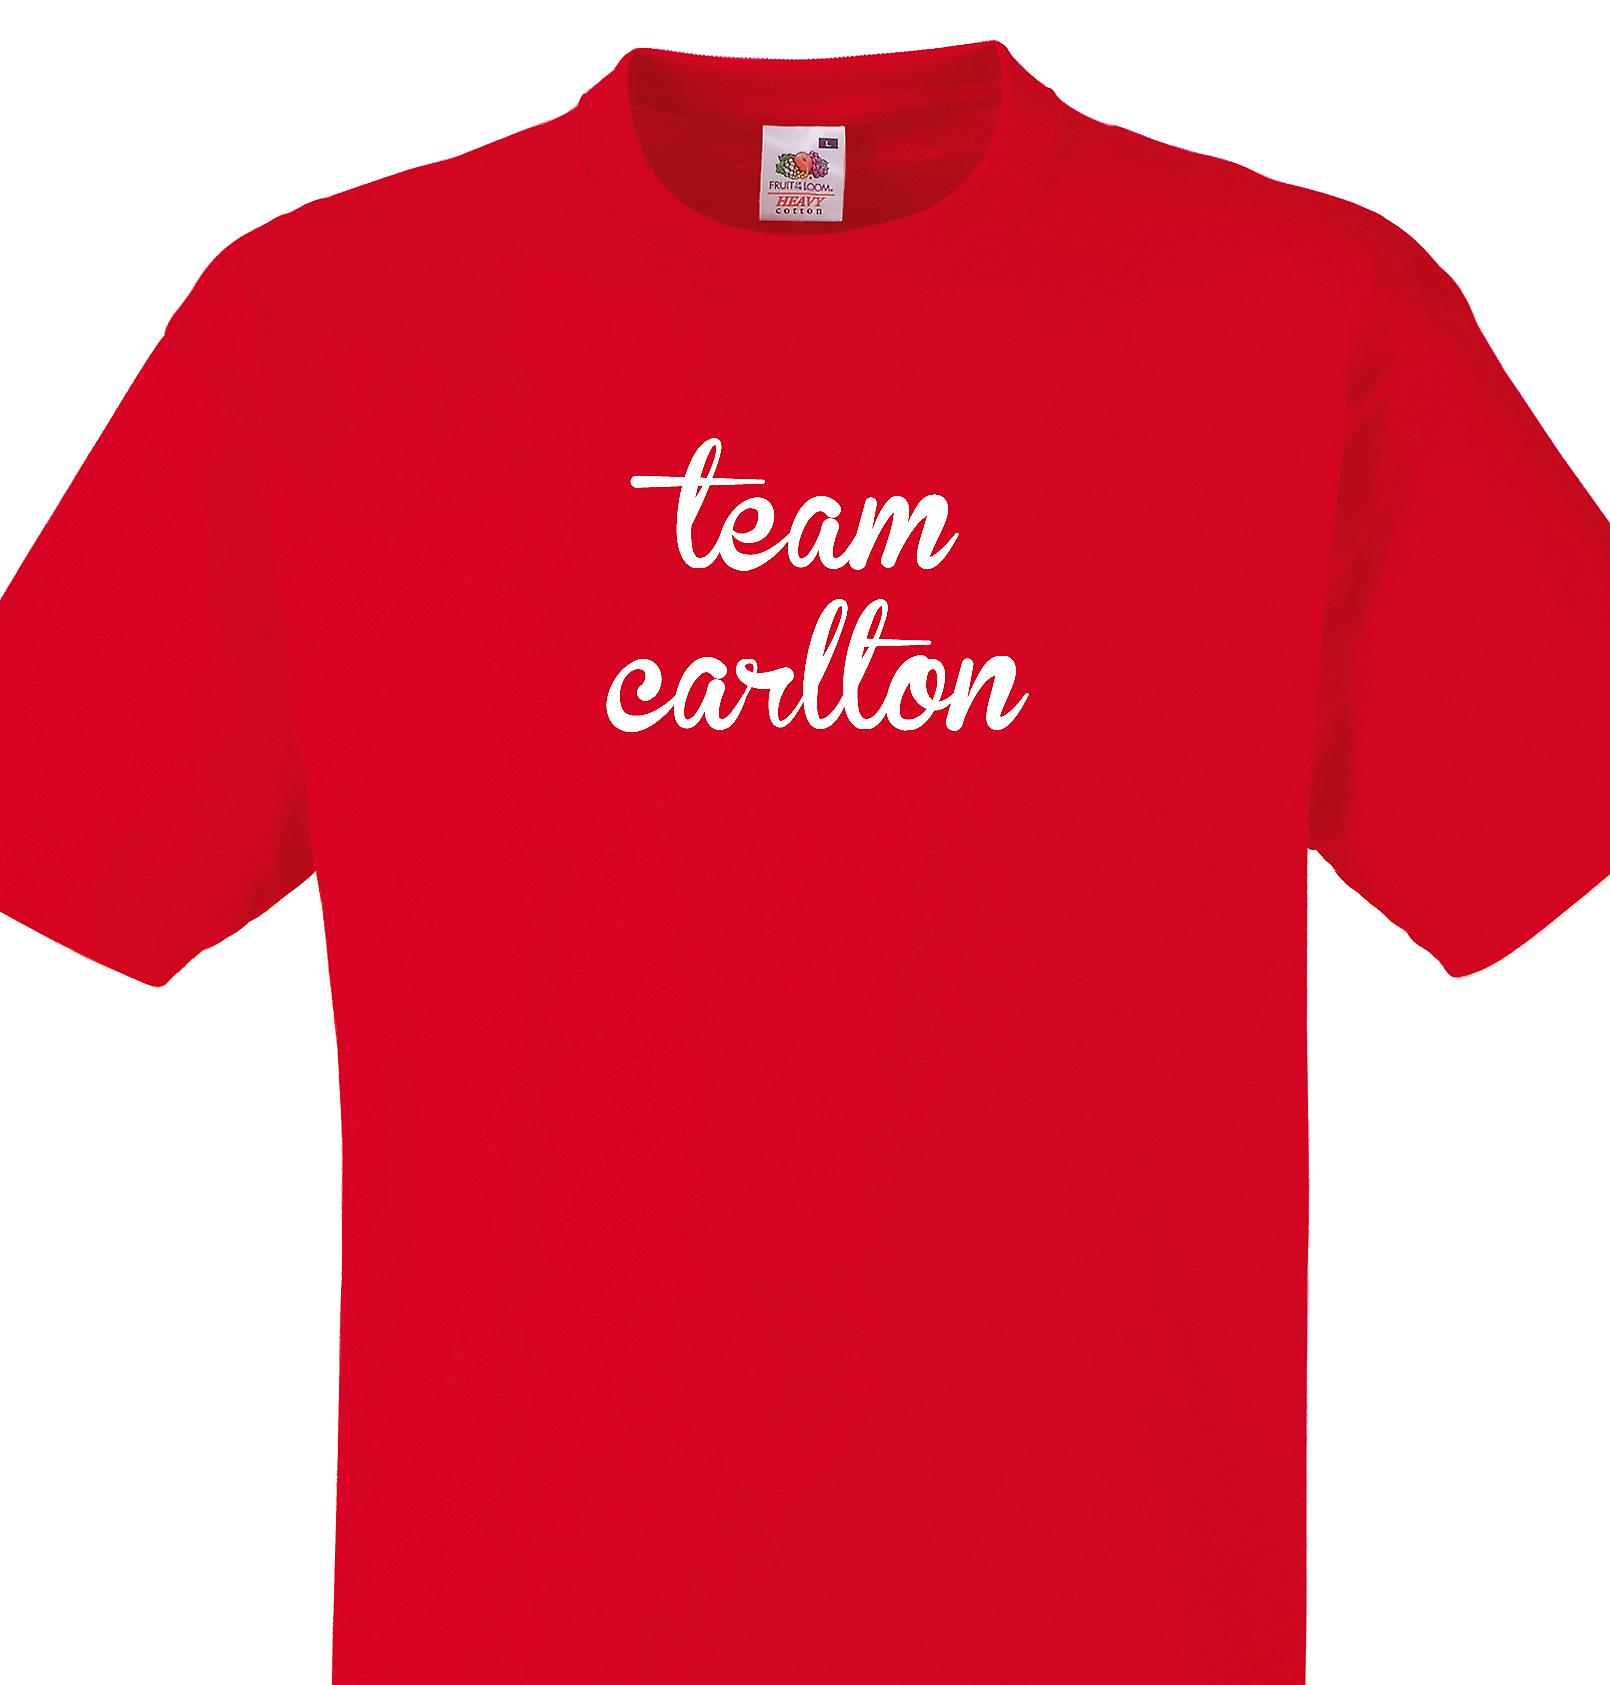 Team Carlton Red T shirt